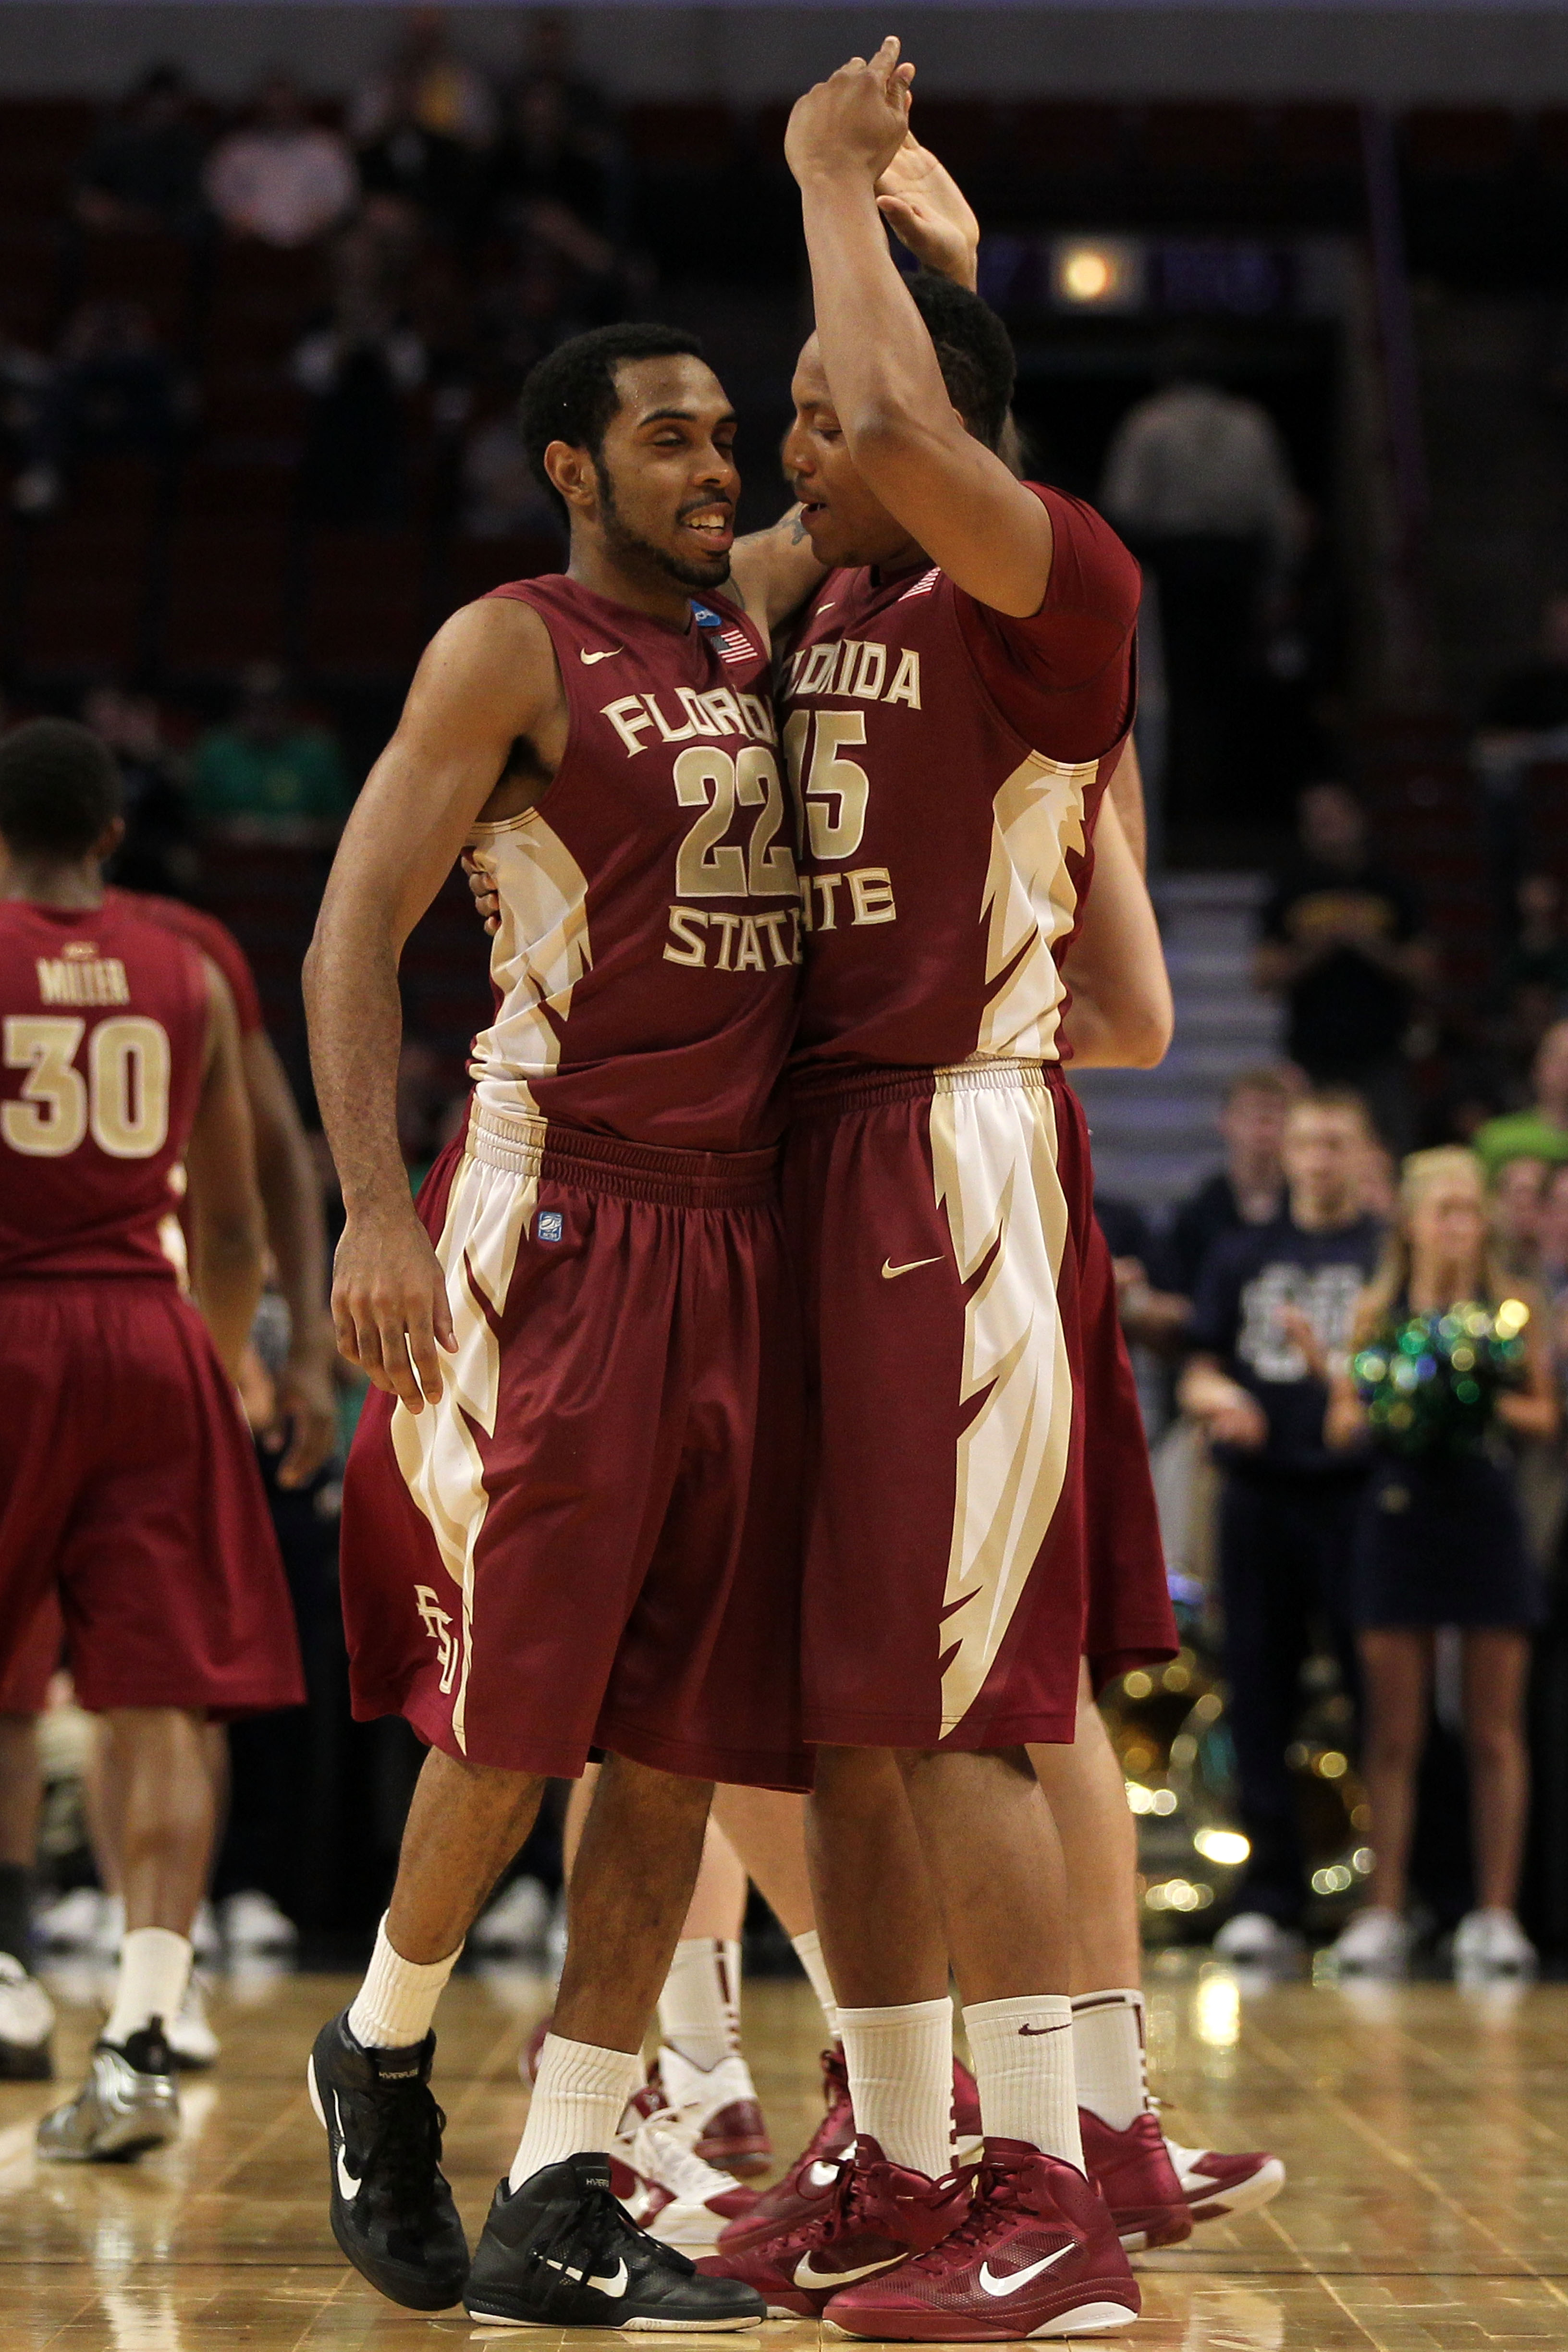 CHICAGO, IL - MARCH 20:  Derwin Kitchen #22 and Terrance Shannon #15 of the Florida State Seminoles celebrate in the second half of the game against the Notre Dame Fighting Irish during the third round of the 2011 NCAA men's basketball tournament at the U